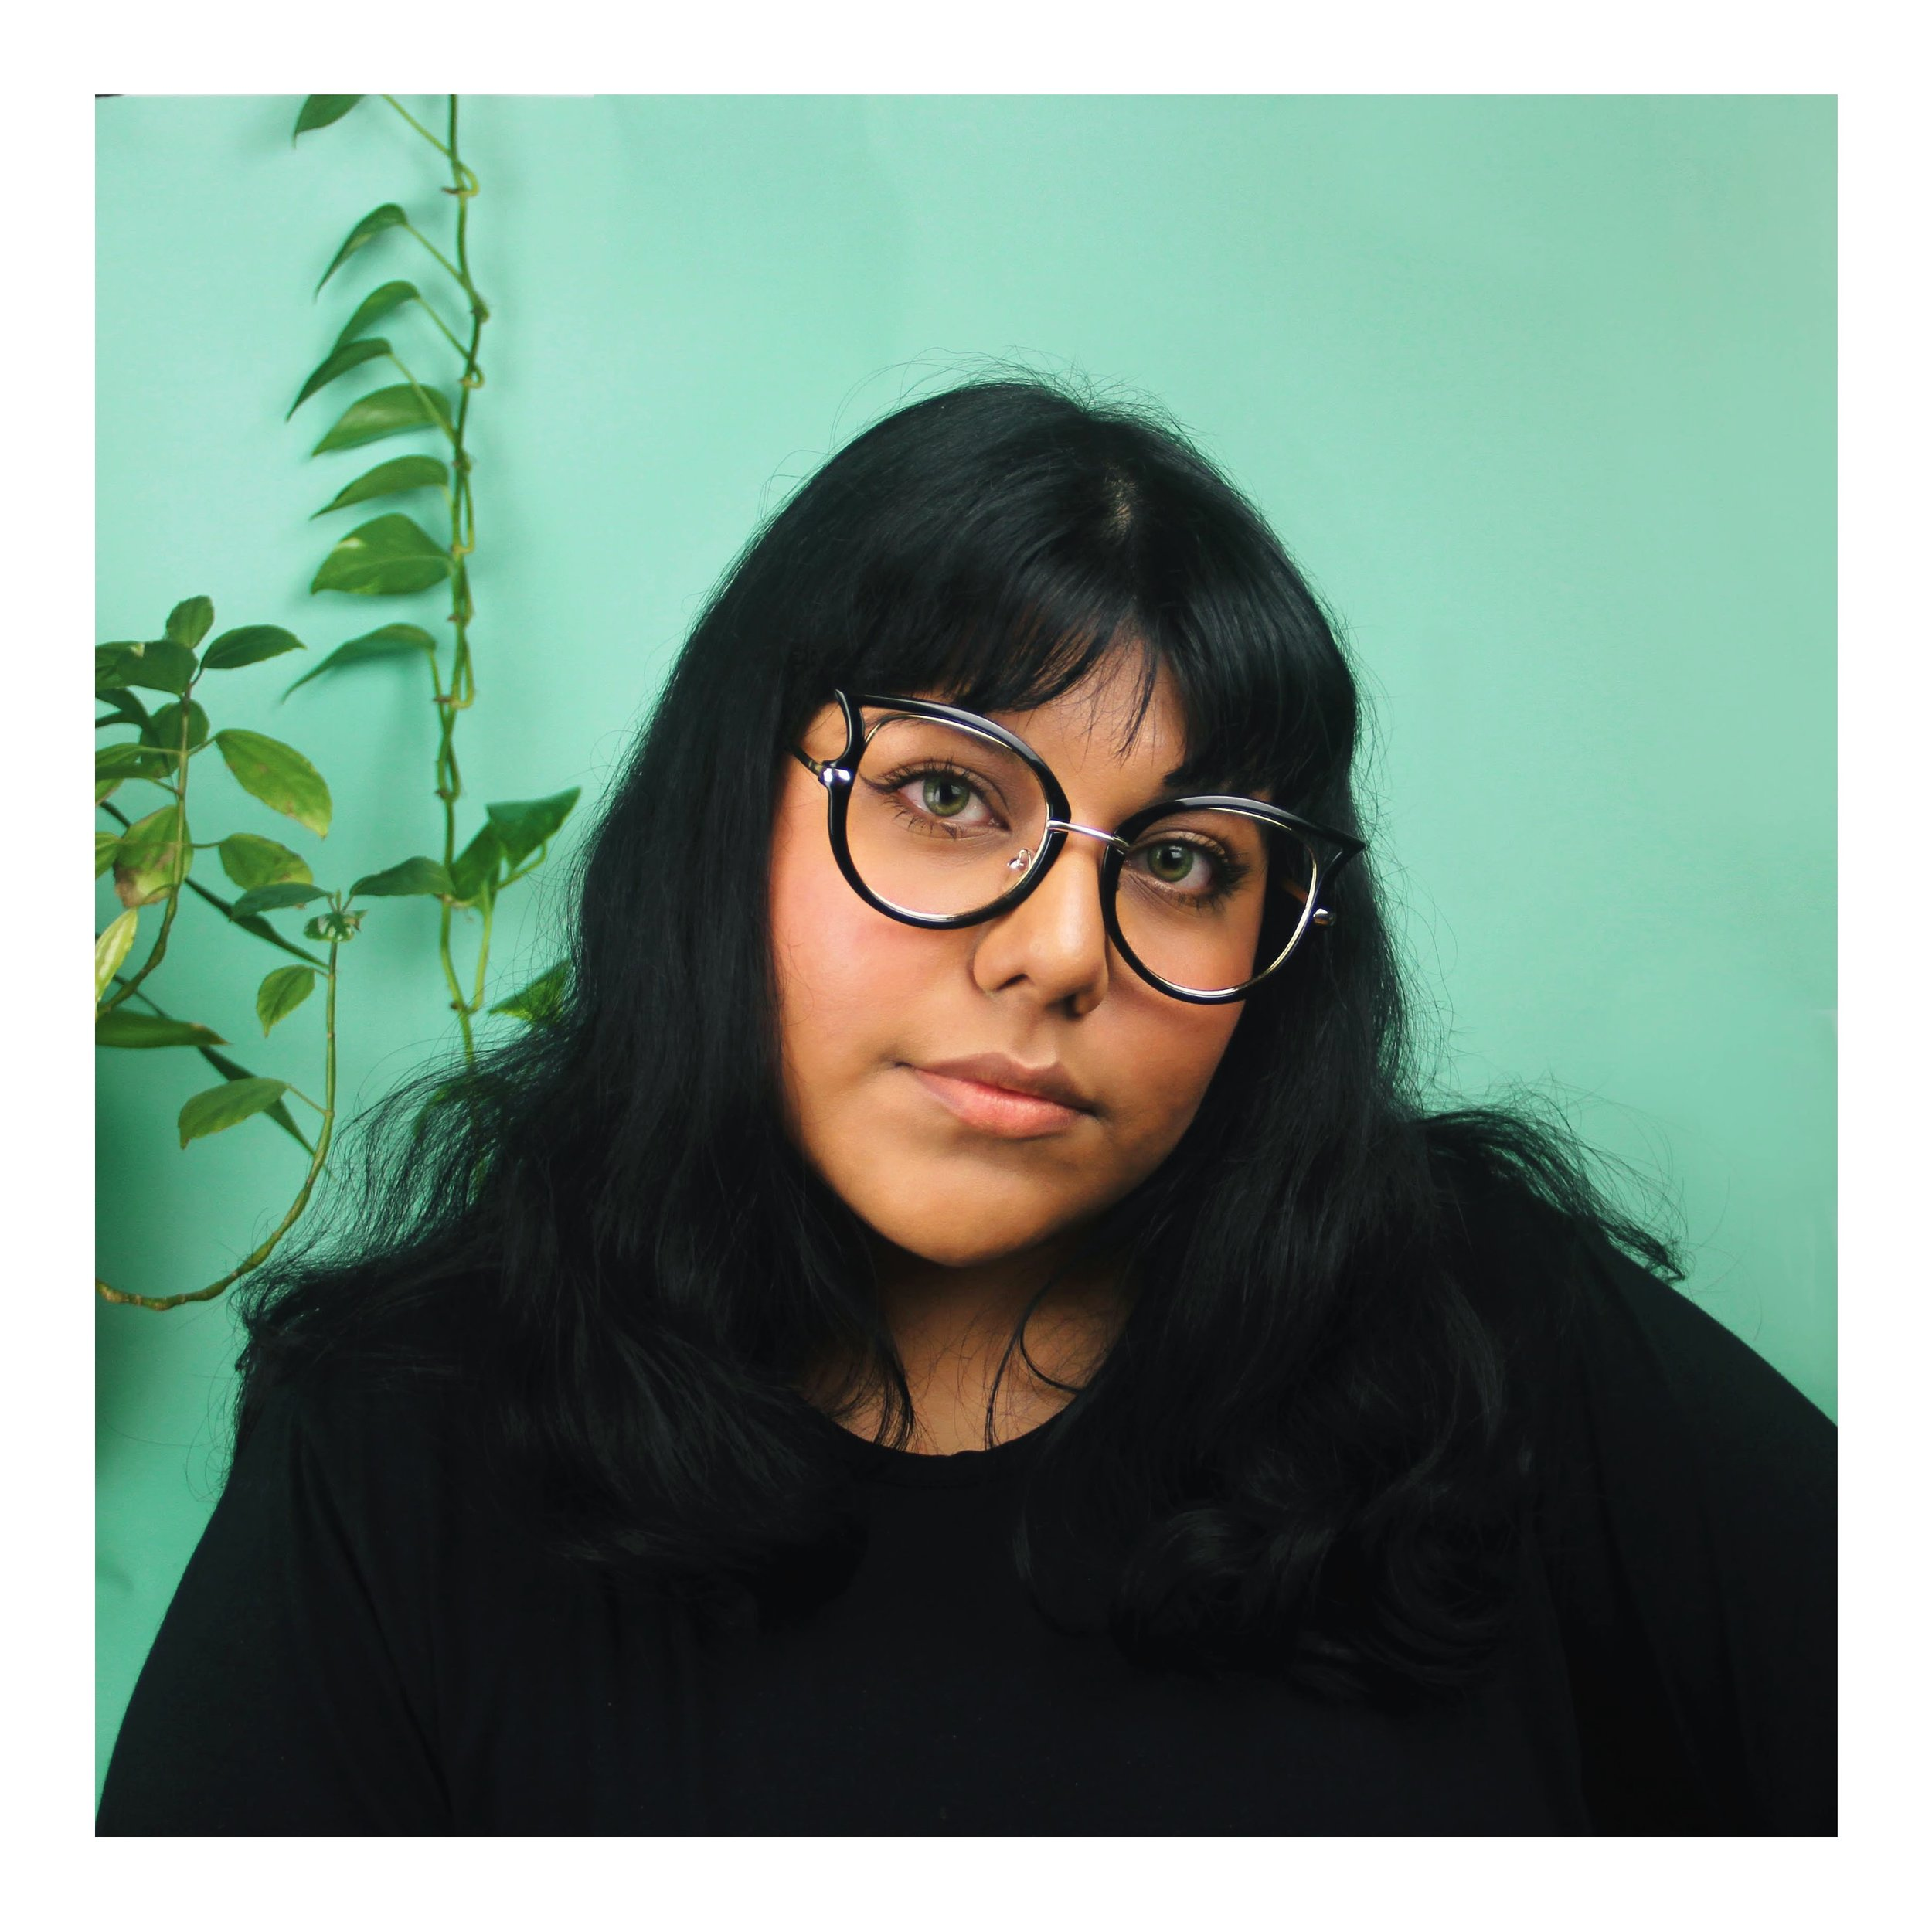 ✧ MELISSA PERALTA ✧ - Born, raised and based in Queens, New York.Melissa graduated from Parson's School of Design with a BFA in Communication Design. While at Parsons, she fell in love with printmaking and minored in it. This led to the creation of Dynamic Doll in 2015 where she sells screen printed apparel, pins, patches and other handmade accessories.During her spare time she likes to draw, drink copious amounts of coffee, embroider, tend to her plants, cuddle with her fluffy black cat (Jinx), and speak in first person.Let's get in touch:melissa.s.peralta@gmail.com